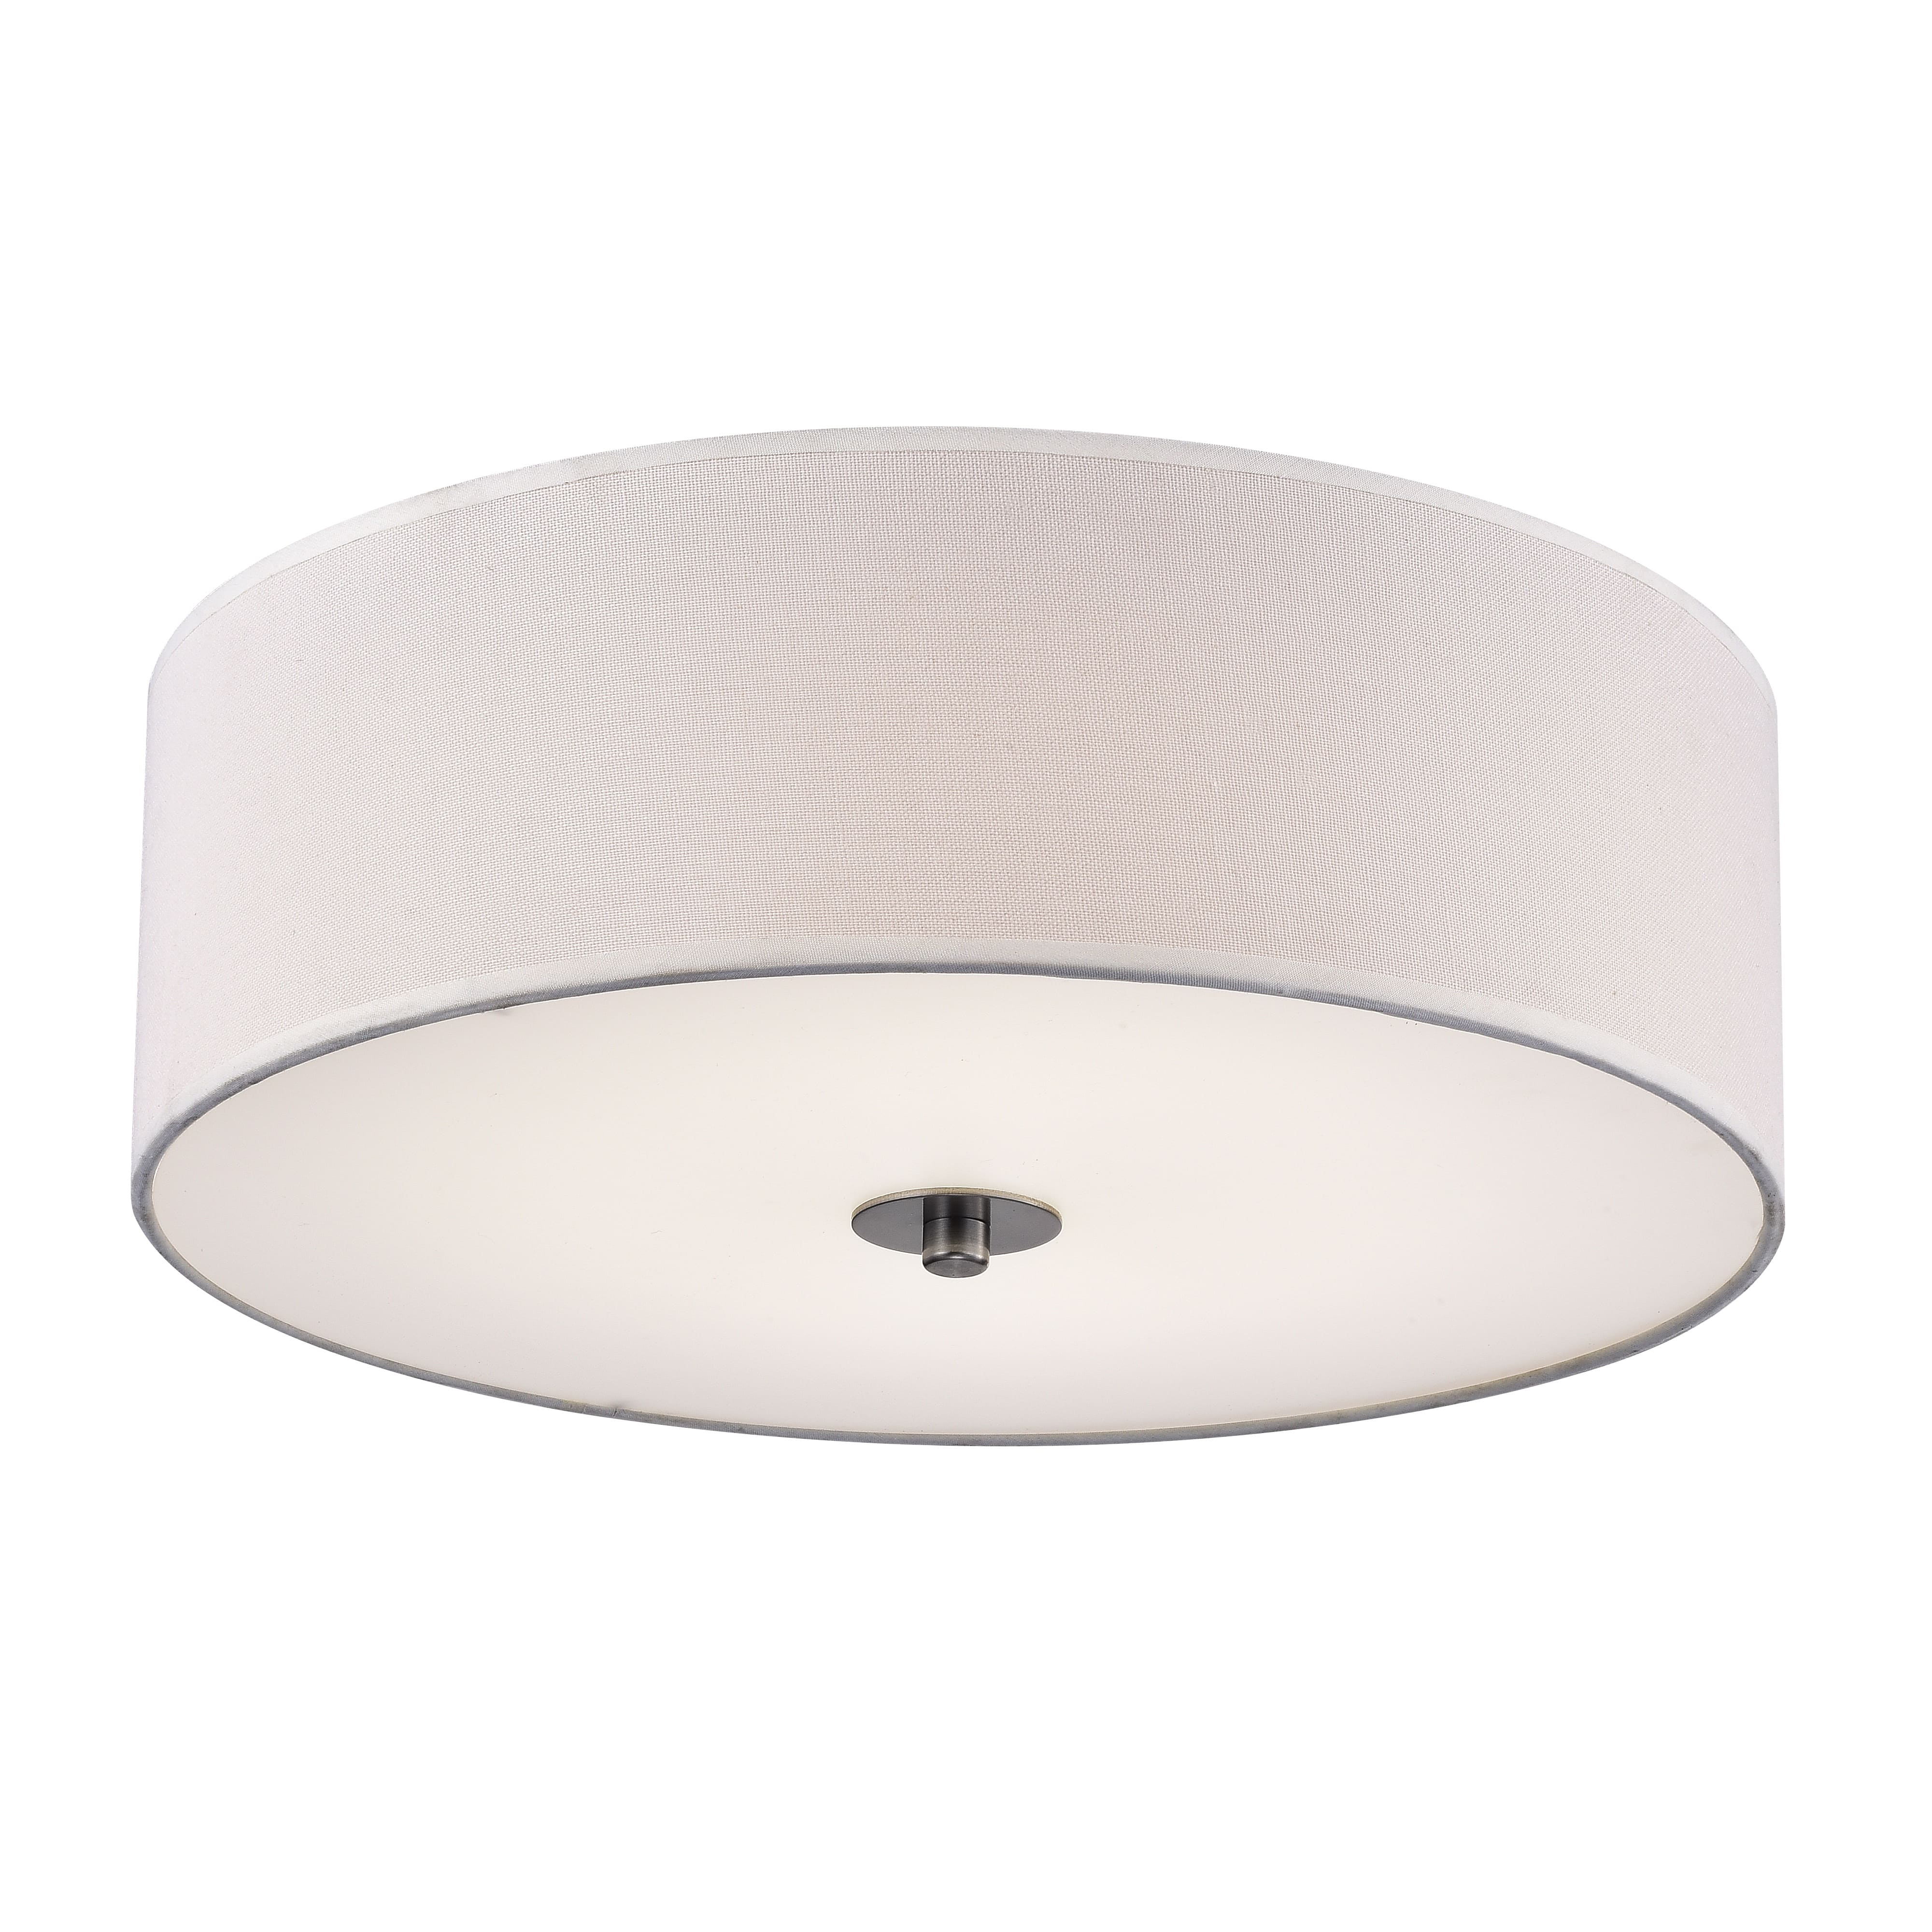 https://www.hotel-lamps.com/resources/assets/images/product_images/62.jpg